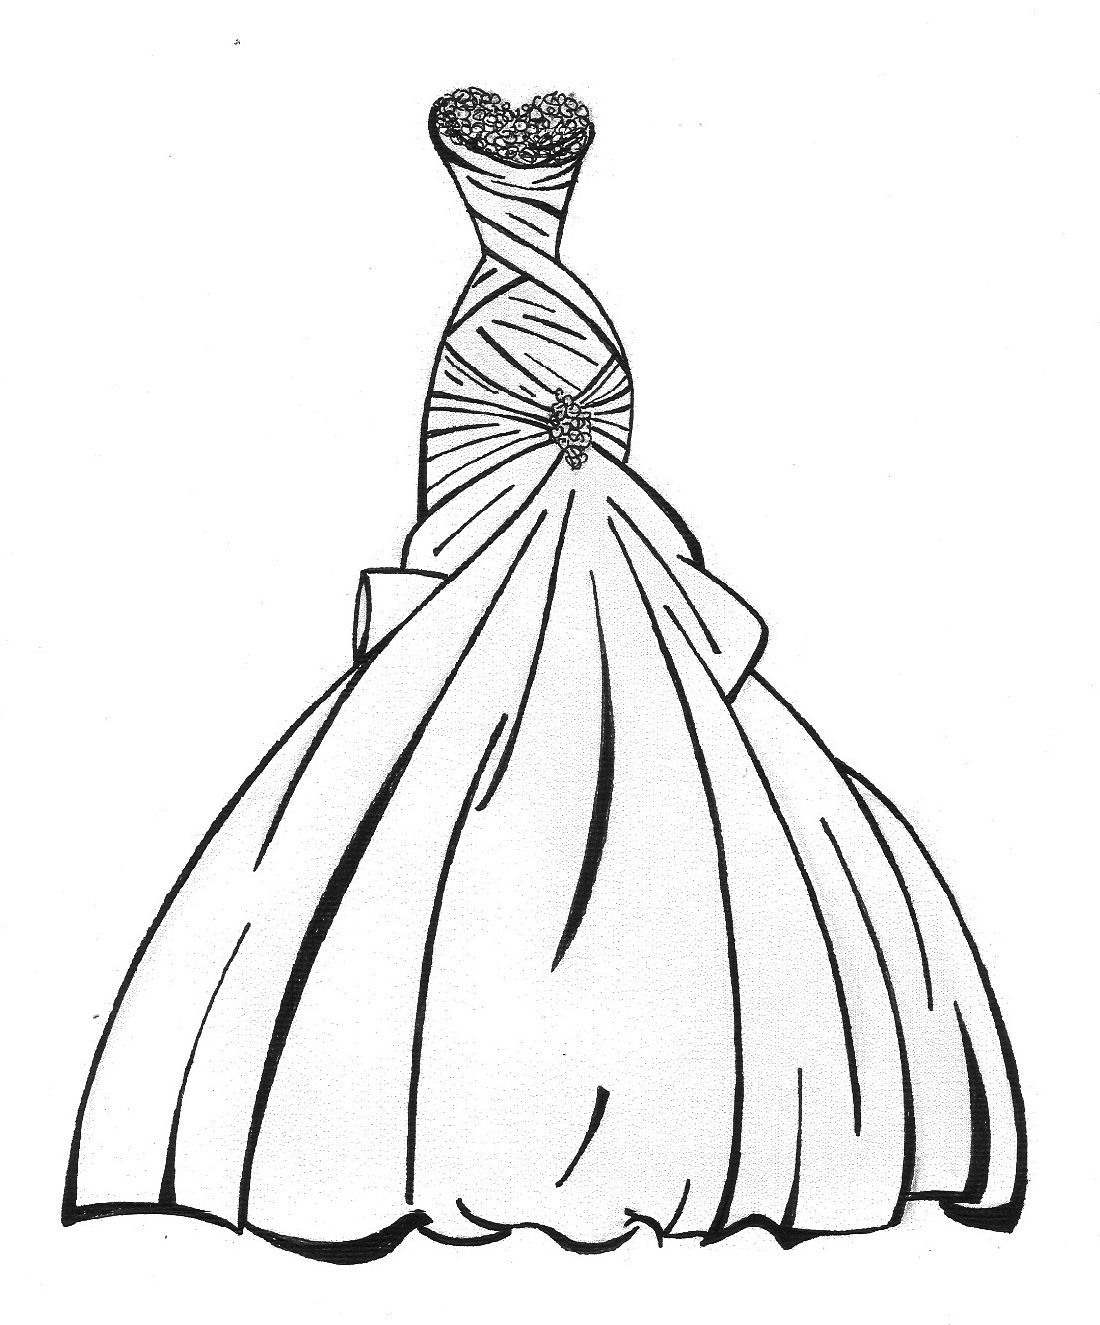 Wedding Dress Coloring Pages 2019 Educative Printable Coloring Pages Coloring Pages For Girls Color